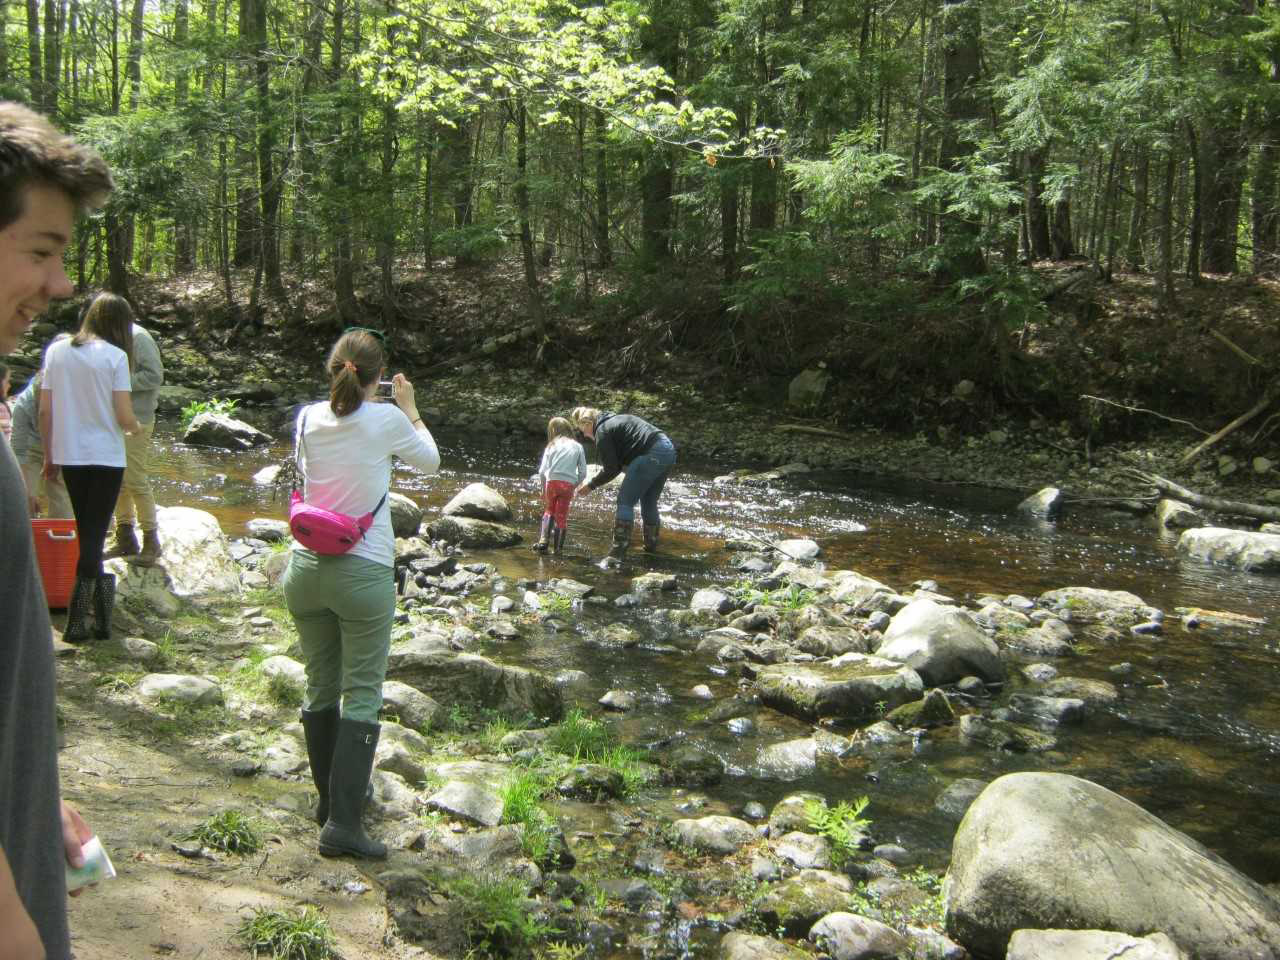 Students and teachers releasing salmon into Wescot Stream in Swanville